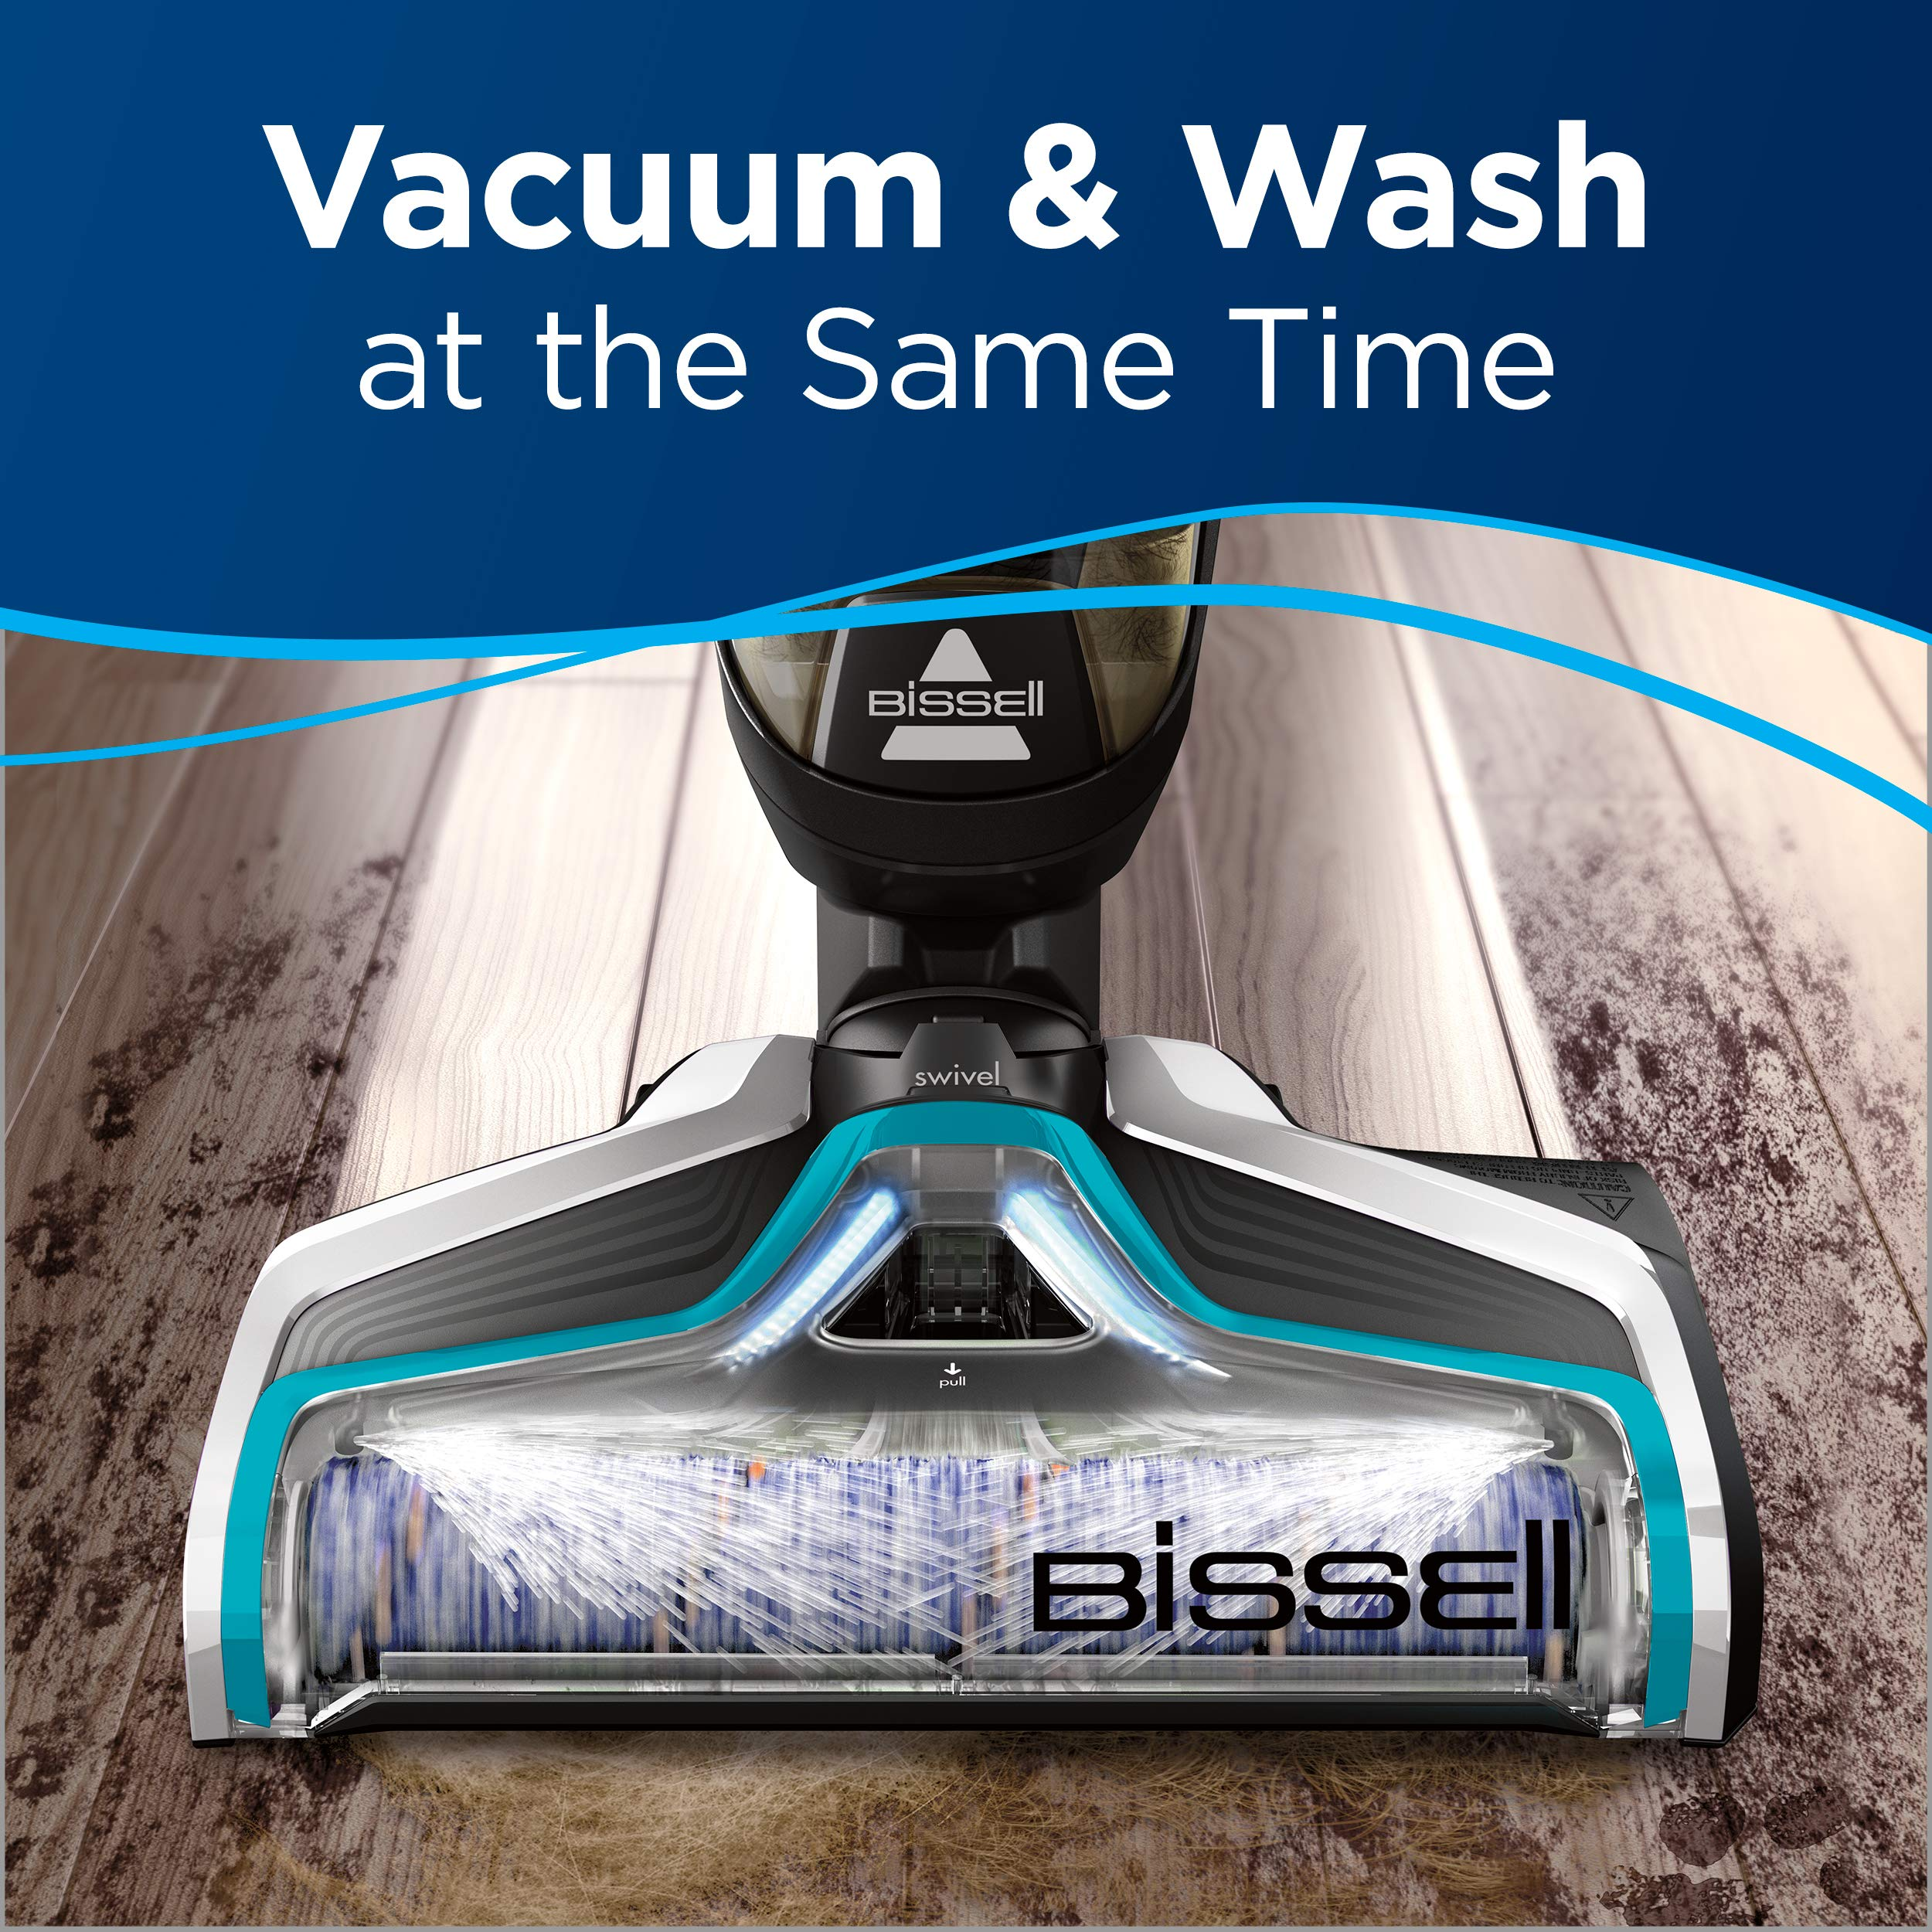 BISSELL CrossWave Cordless Floor and and Carpet Cleaner with Wet-Dry Vacuum, 2551, Black by Bissell (Image #2)